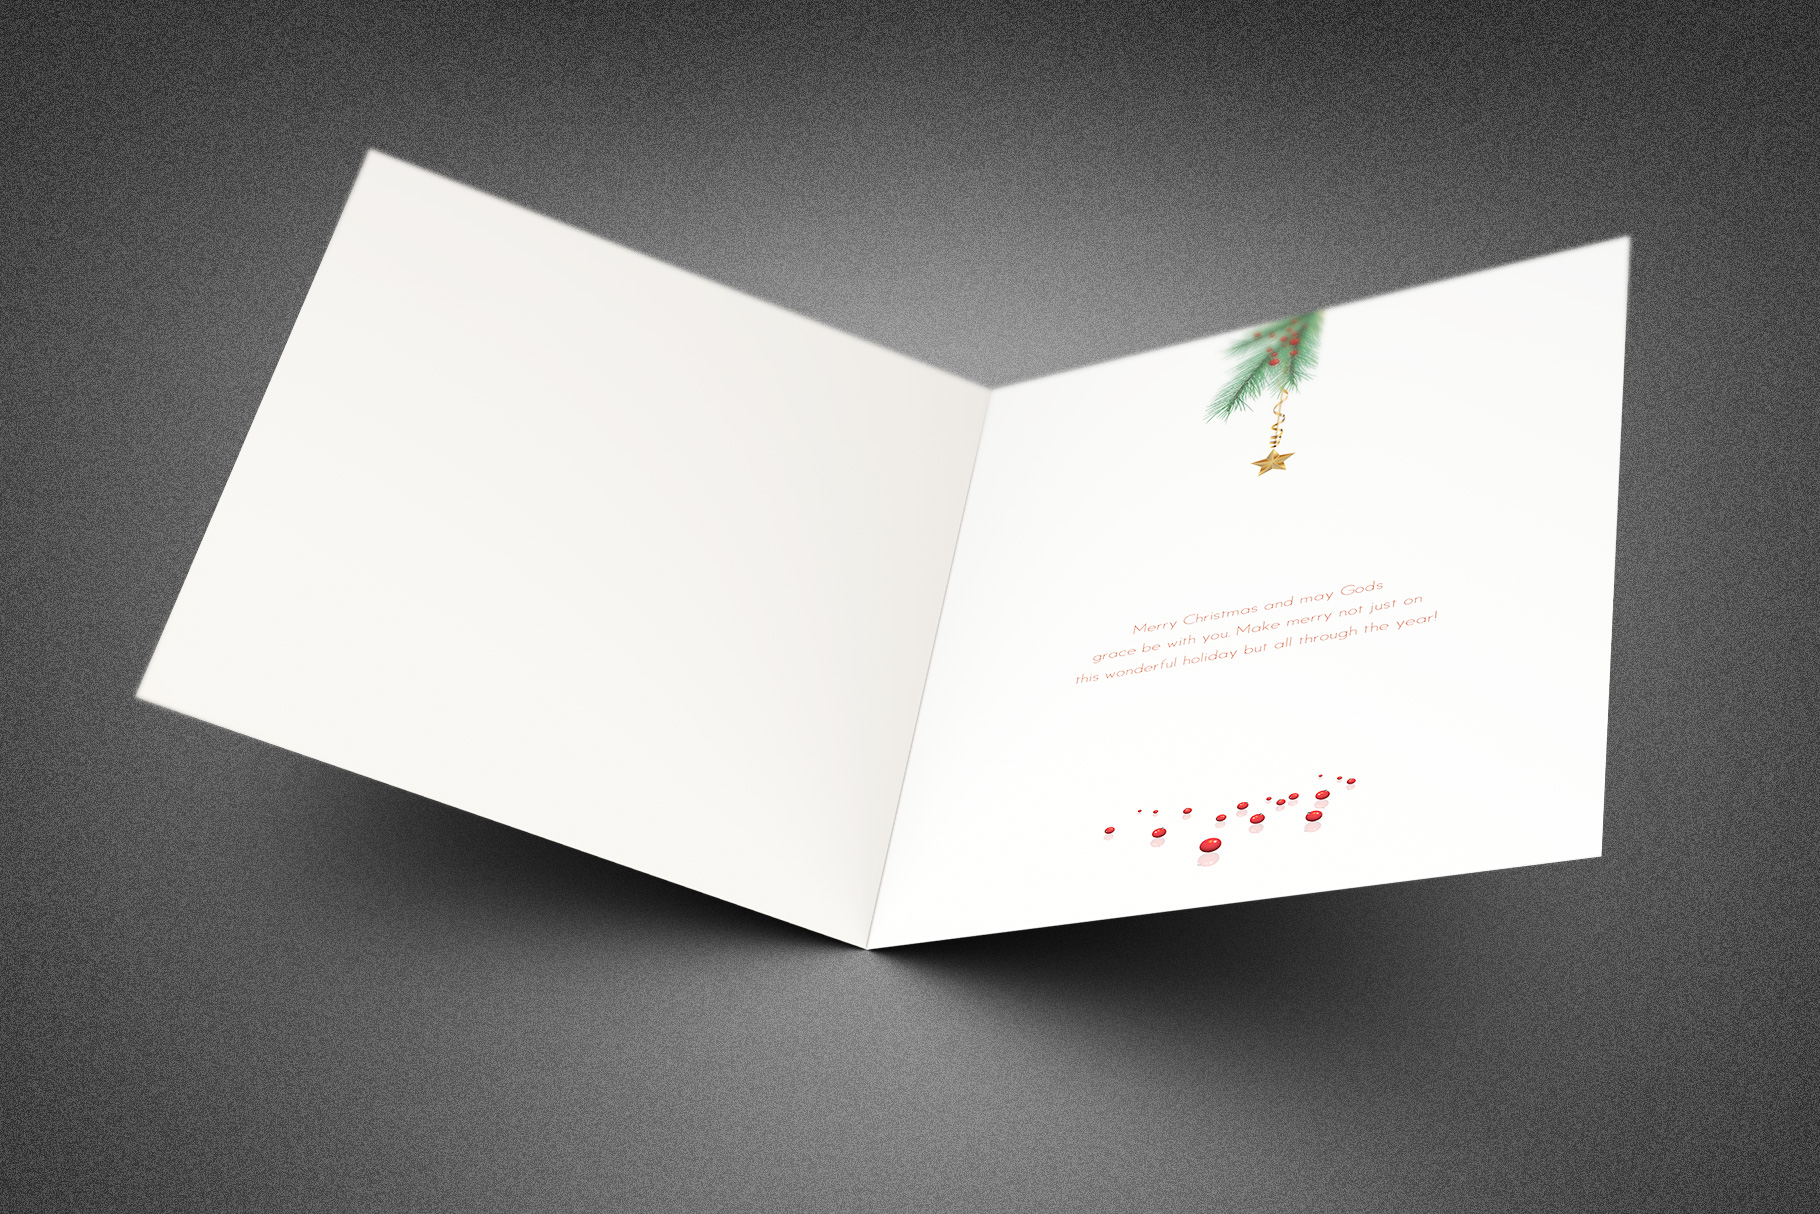 Merry Christmas Greeting Card example image 2